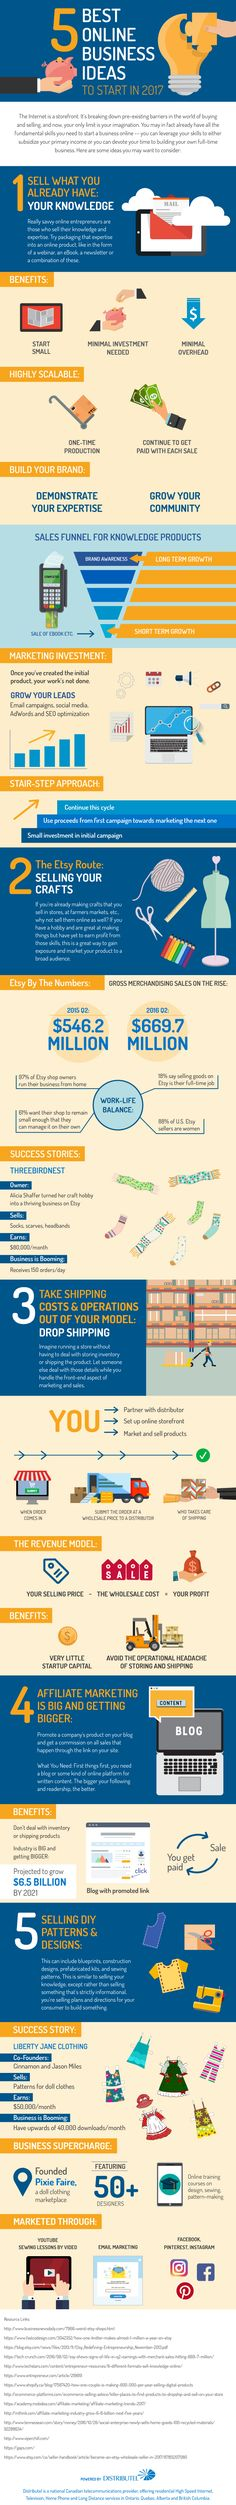 Amazing Online Business Ideas For This Year - Infographic